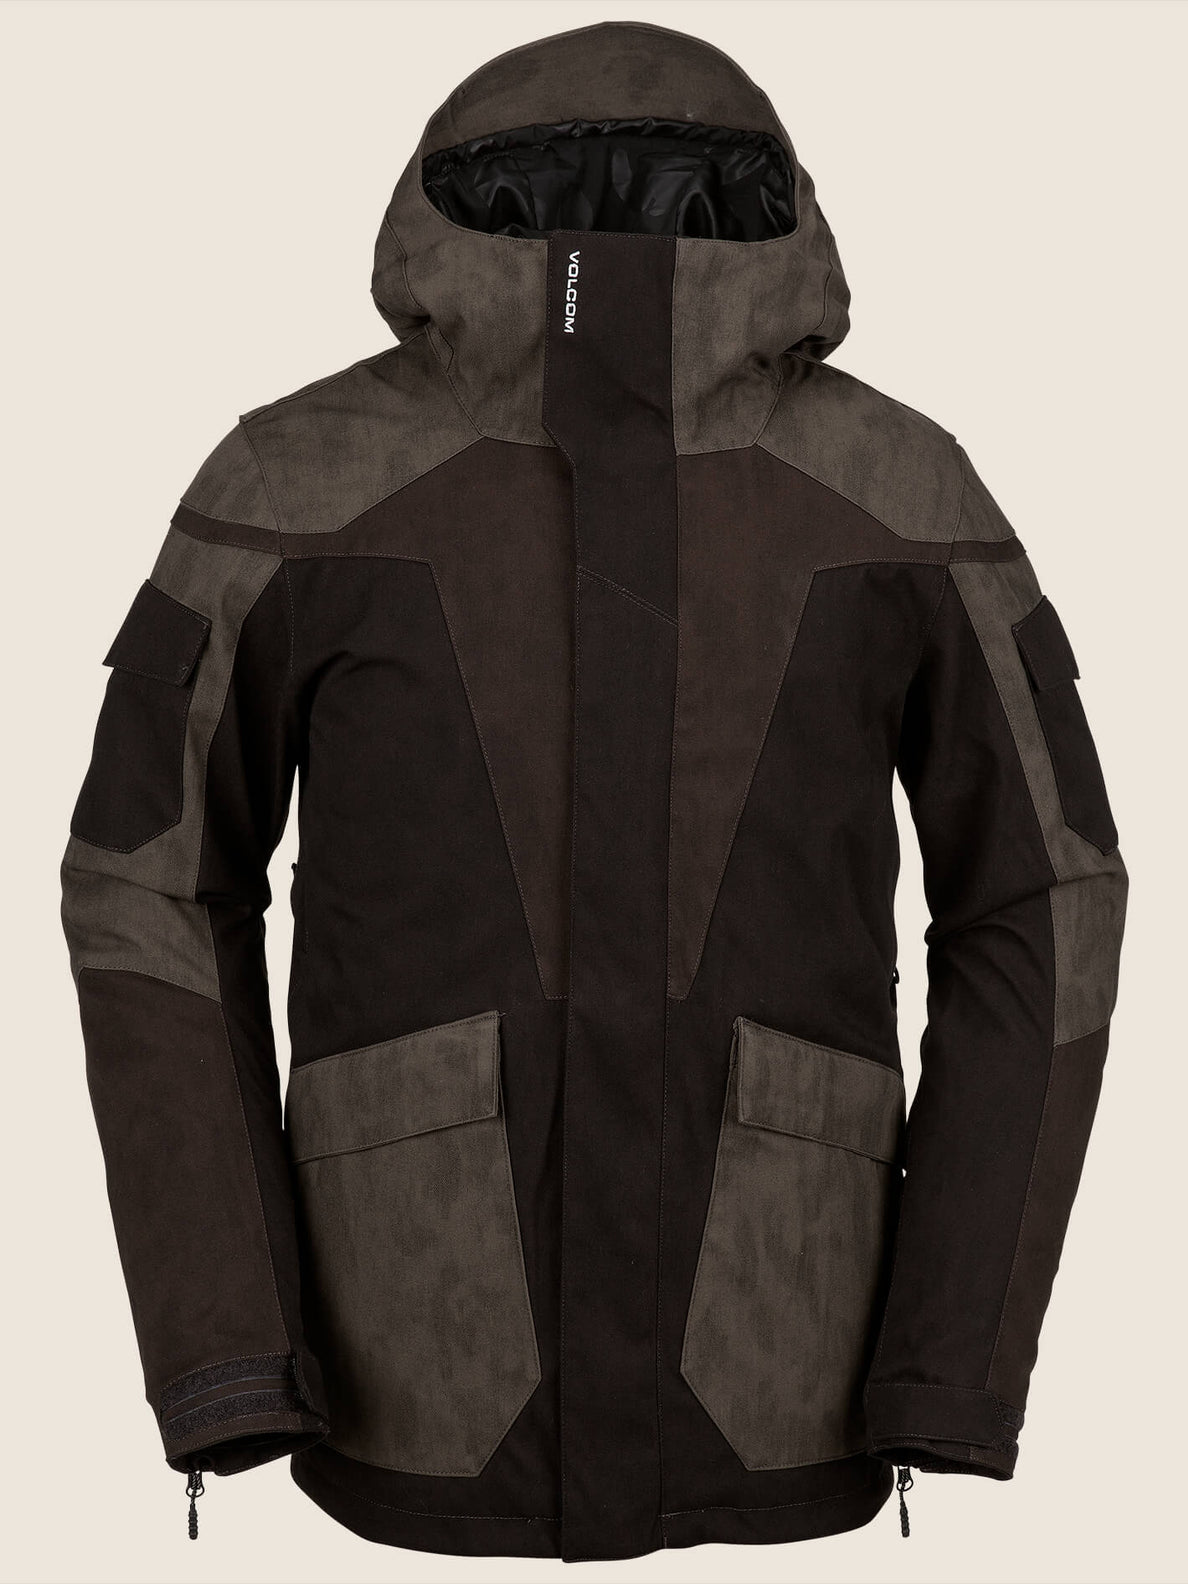 Utility Jacket In Black Combo, Front View